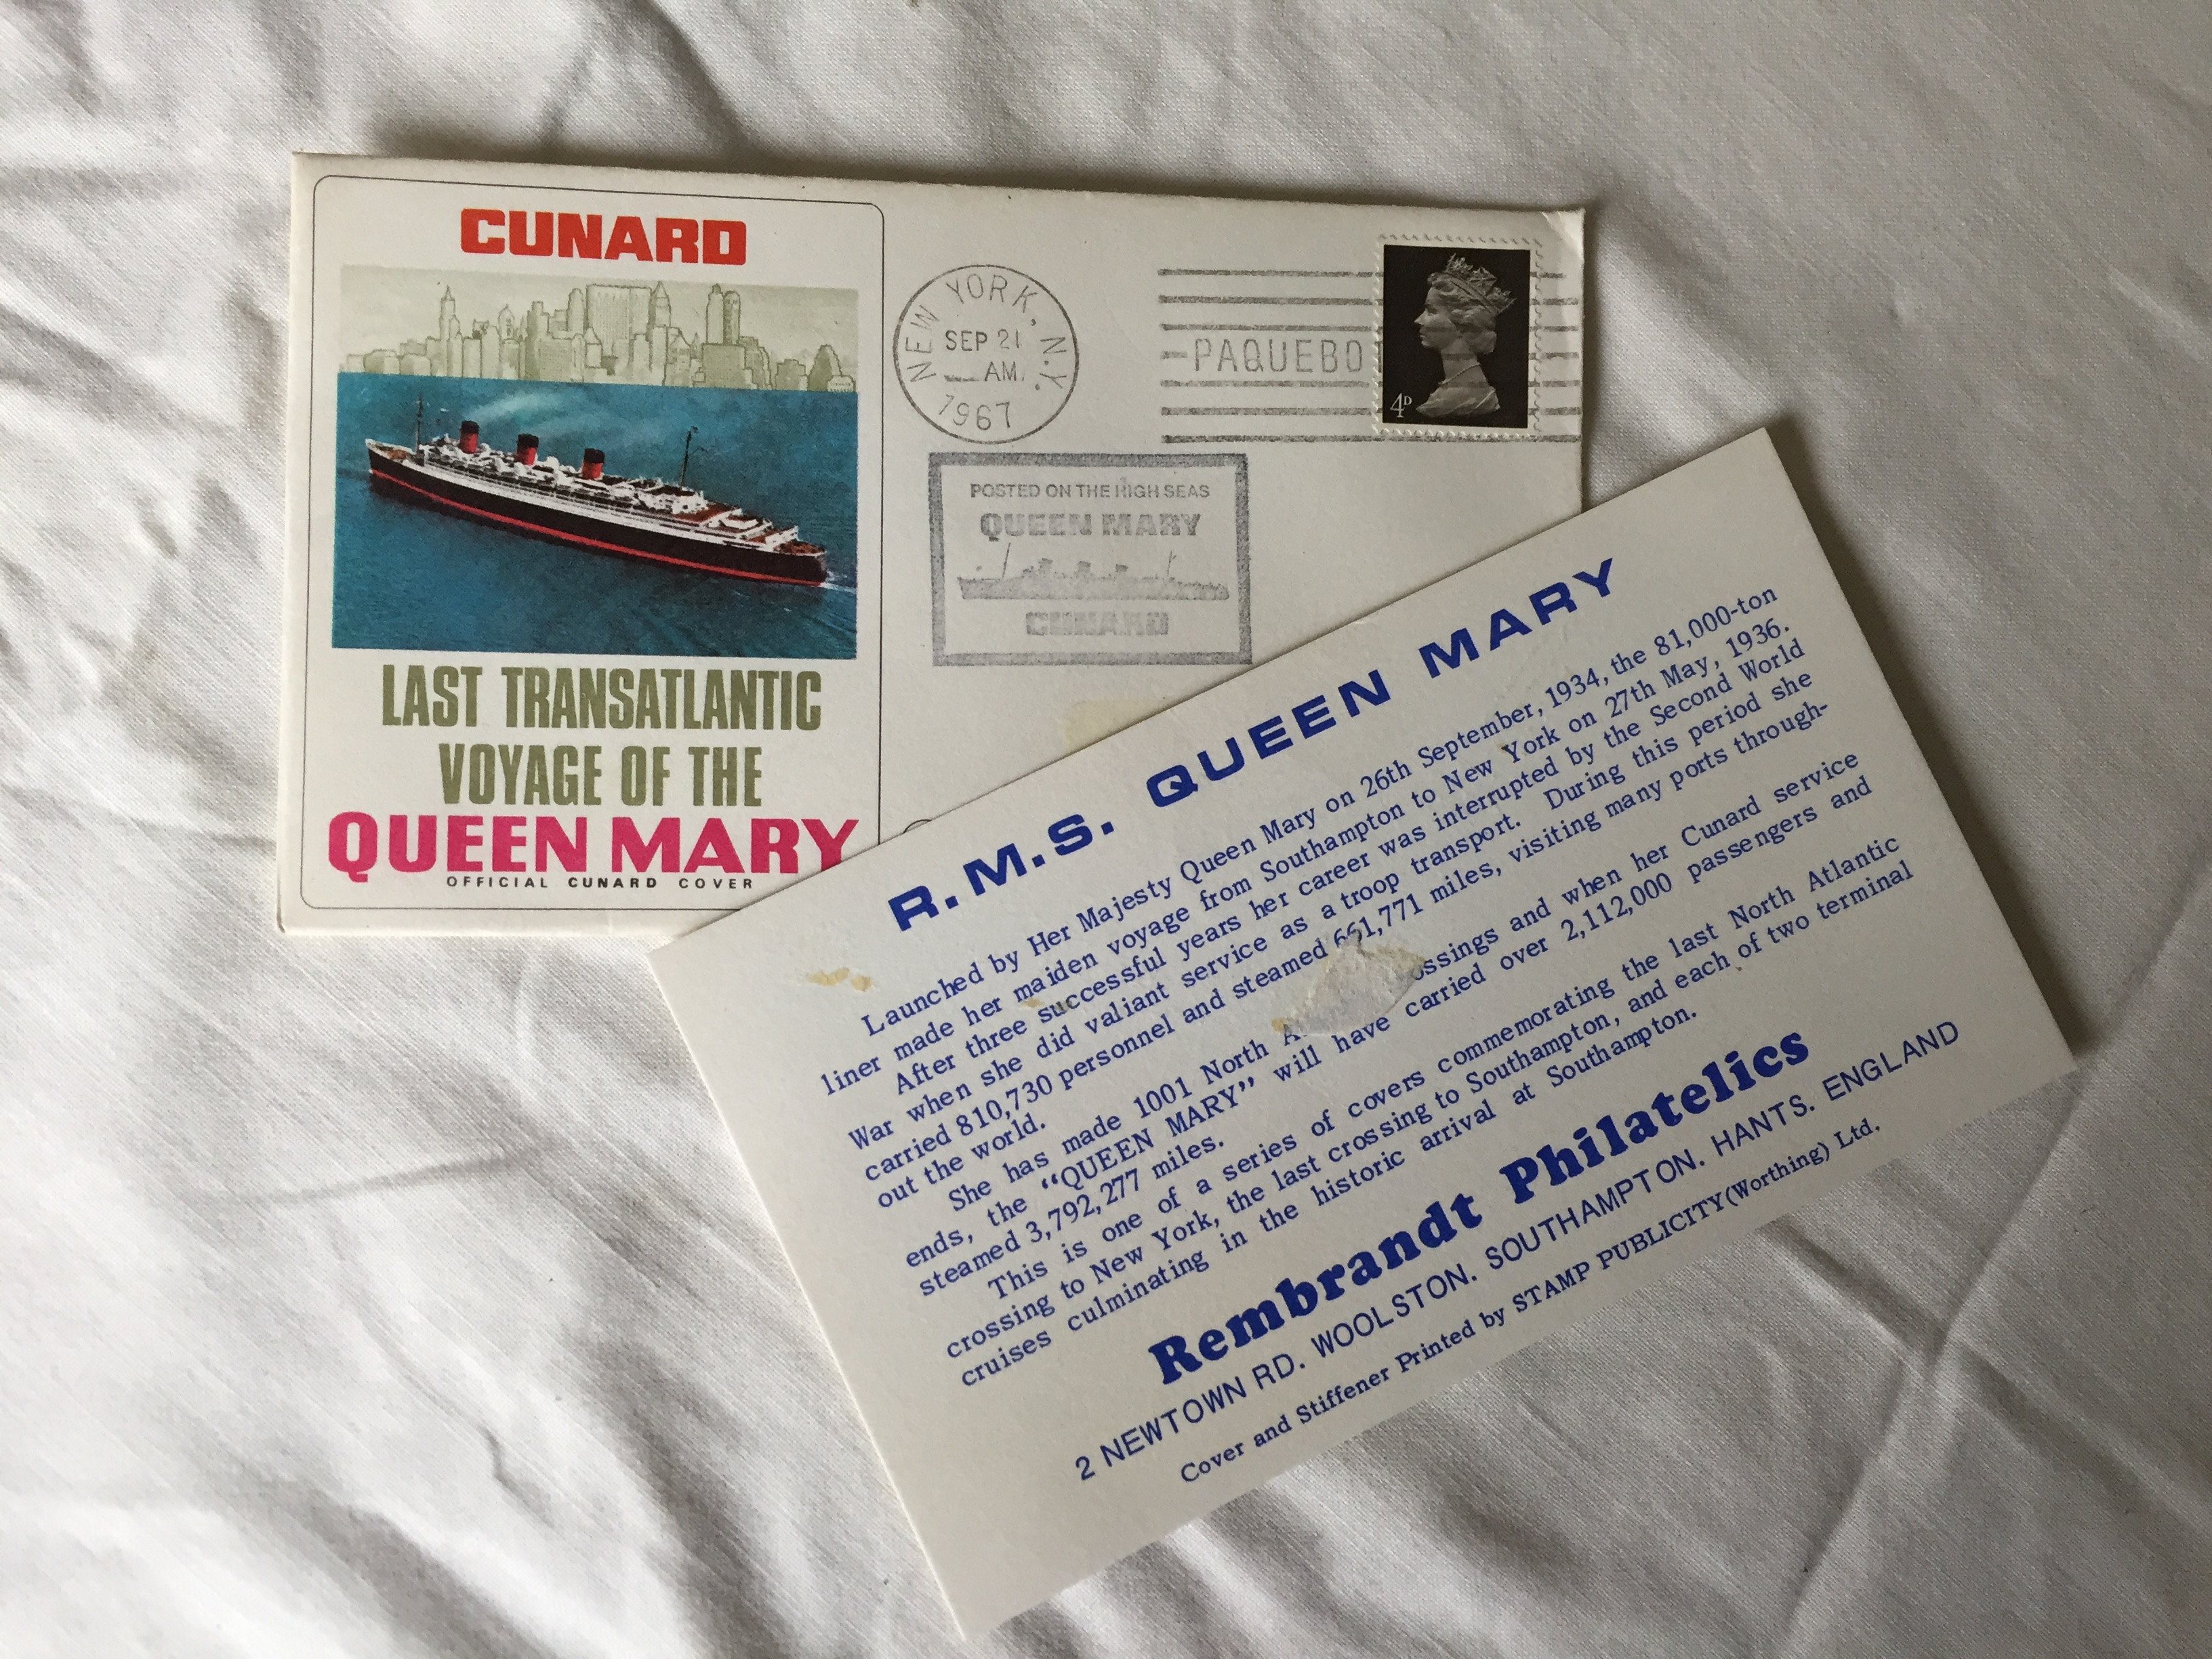 LAST TRANSATLANTIC VOYAGE QUEEN MARY POSTAL CARD DATED 1967